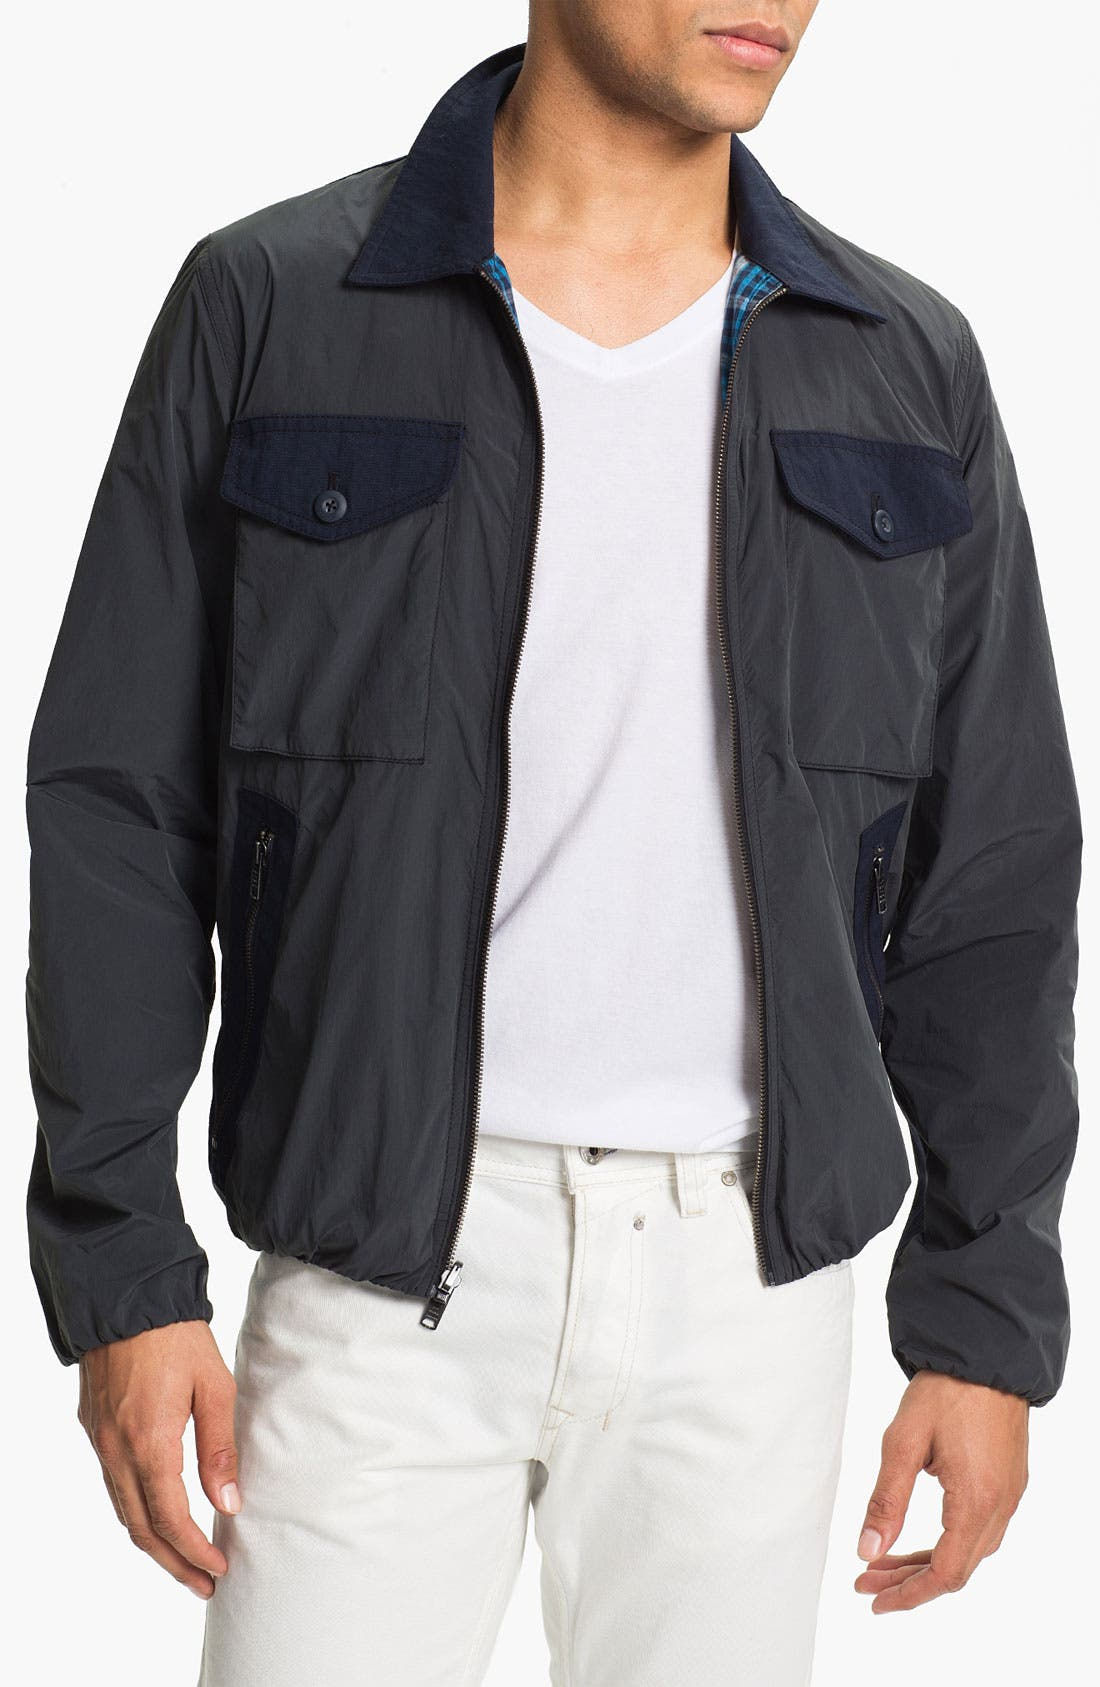 Alternate Image 1 Selected - MARC BY MARC JACOBS 'Nicholson' Reversible Jacket